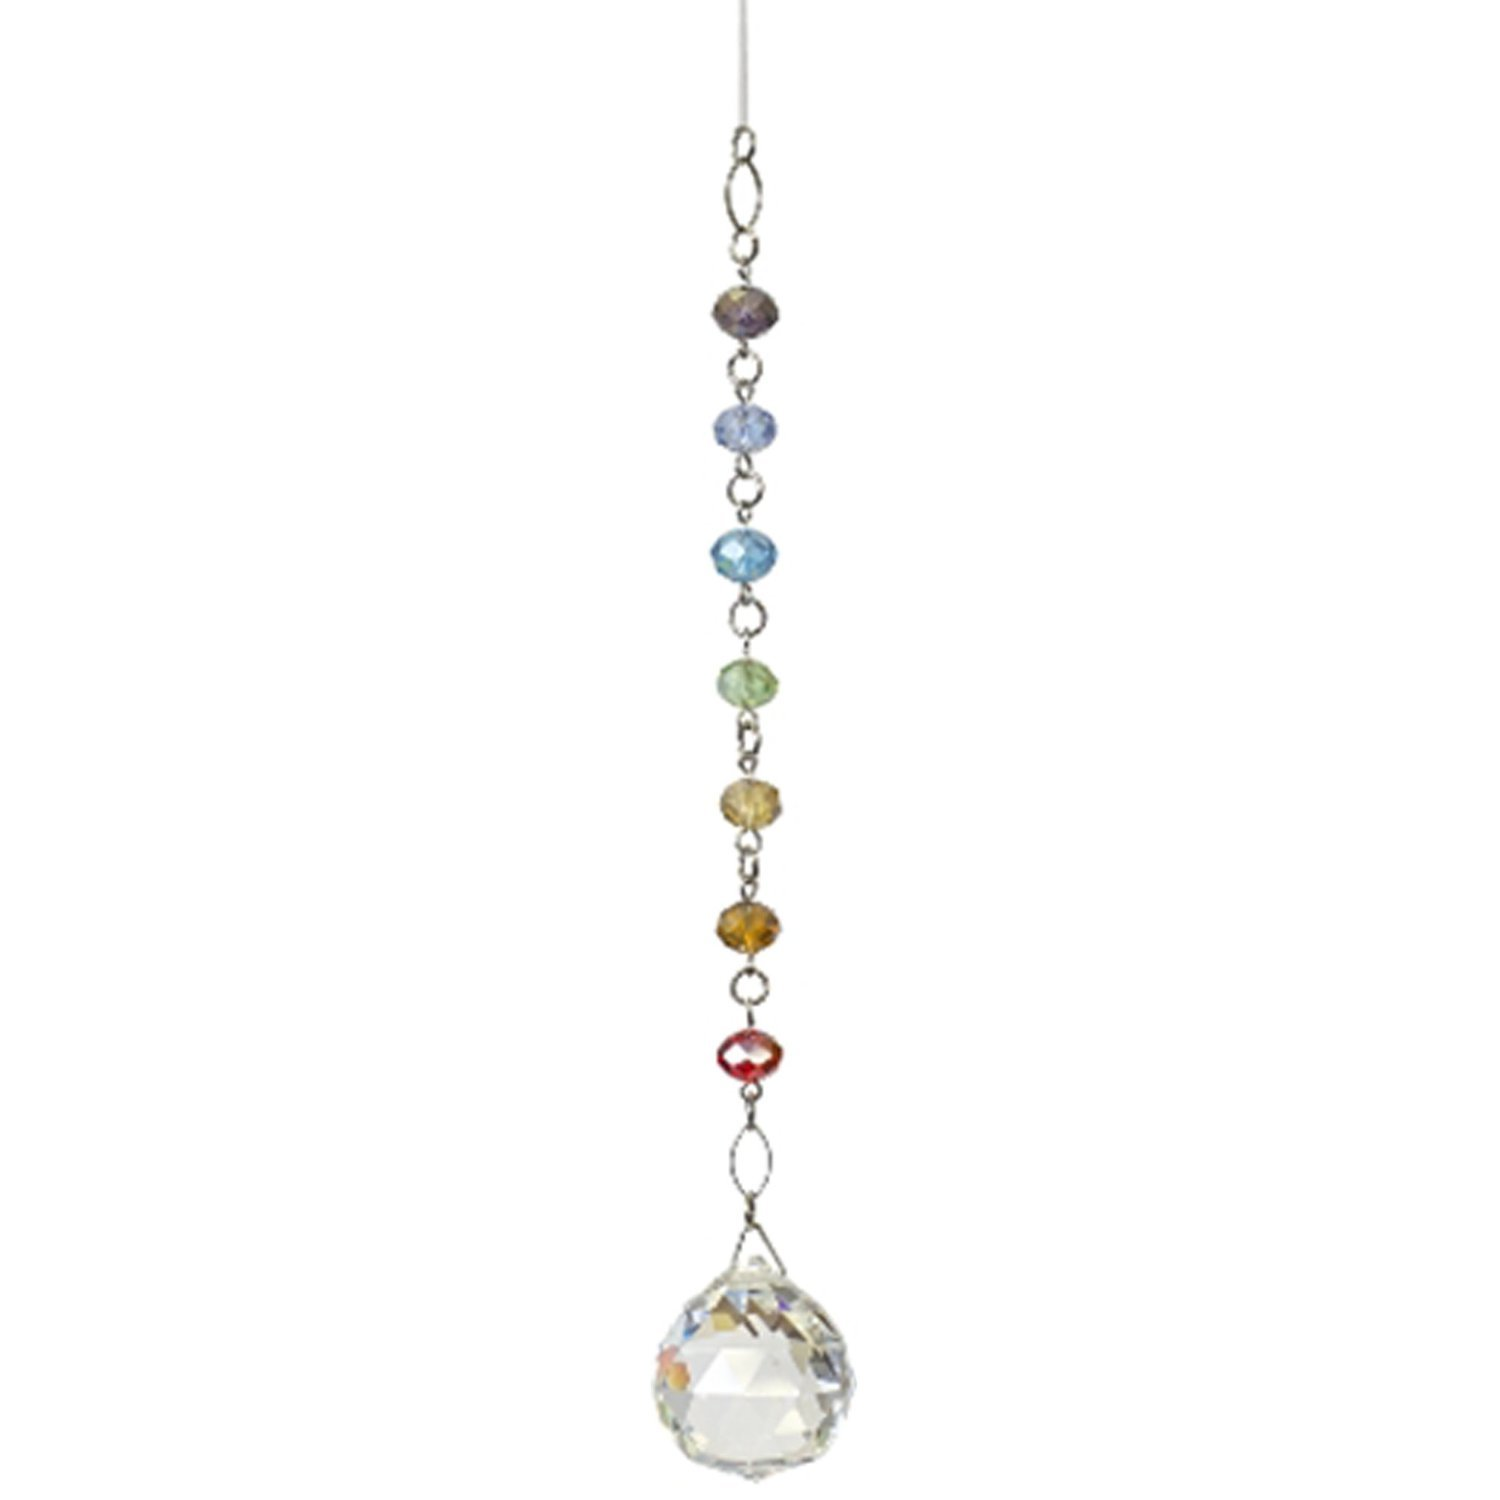 Chakra Chain Suncatcher - Rainbow Maker - Hanging Crystal Suncatcher Ornament - Home, Living Room, Bedroom, Kitchen, Outdoor Décor, Car Decoration - Porch Decor - Sun Catcher - Hangings Crystal Mobile